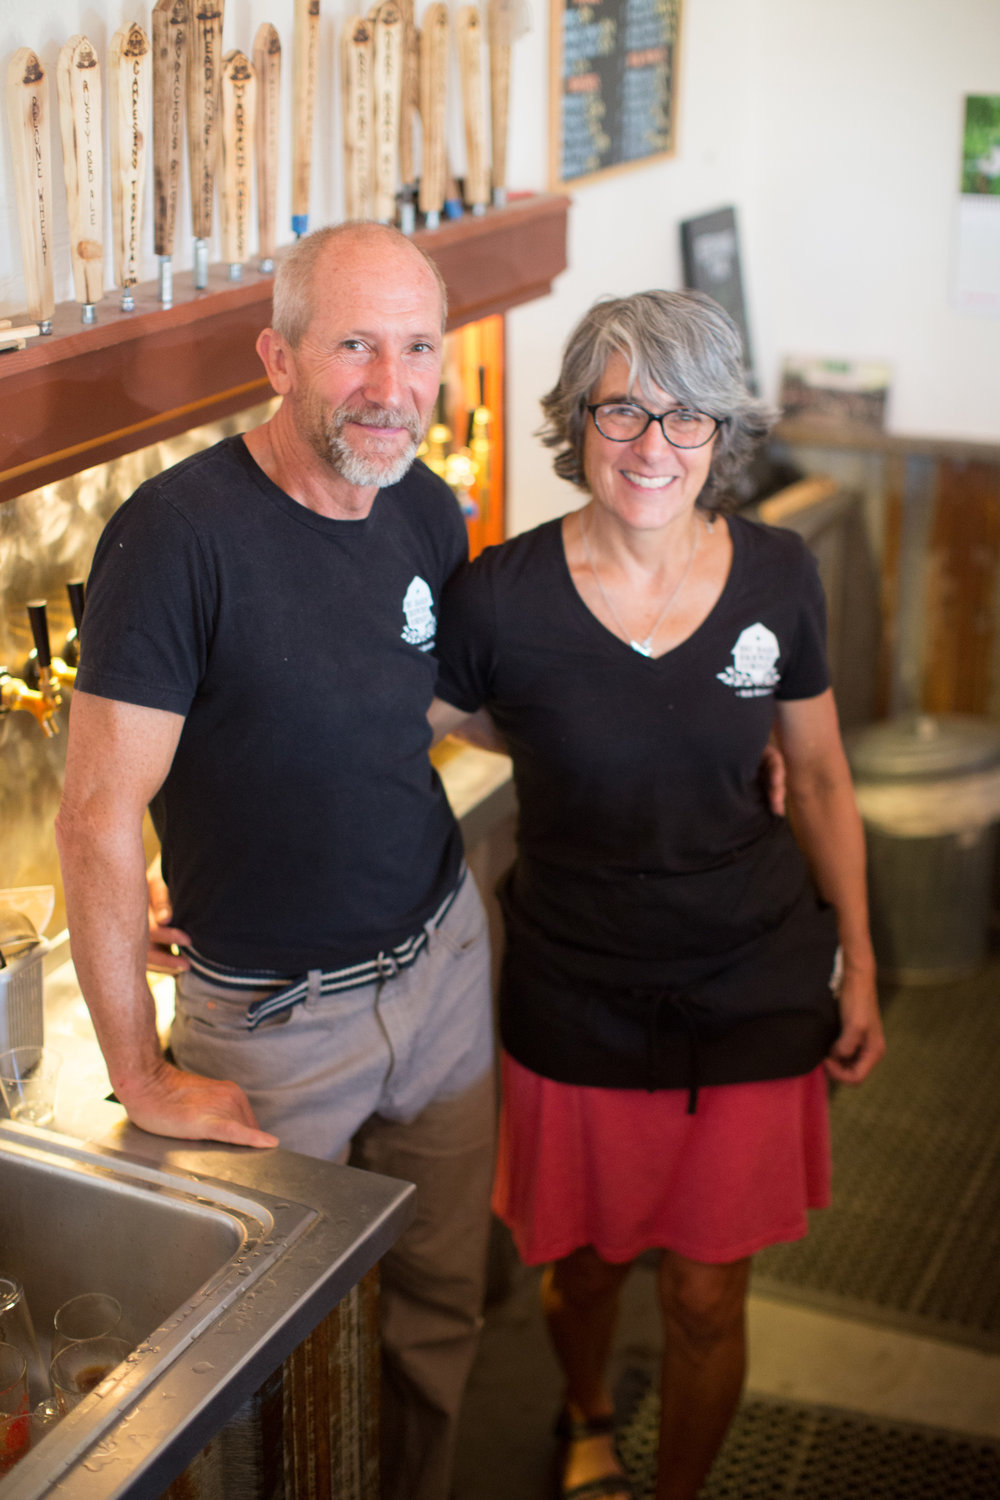 Craig and Jane Deitz, owners of Big Barn Brewing